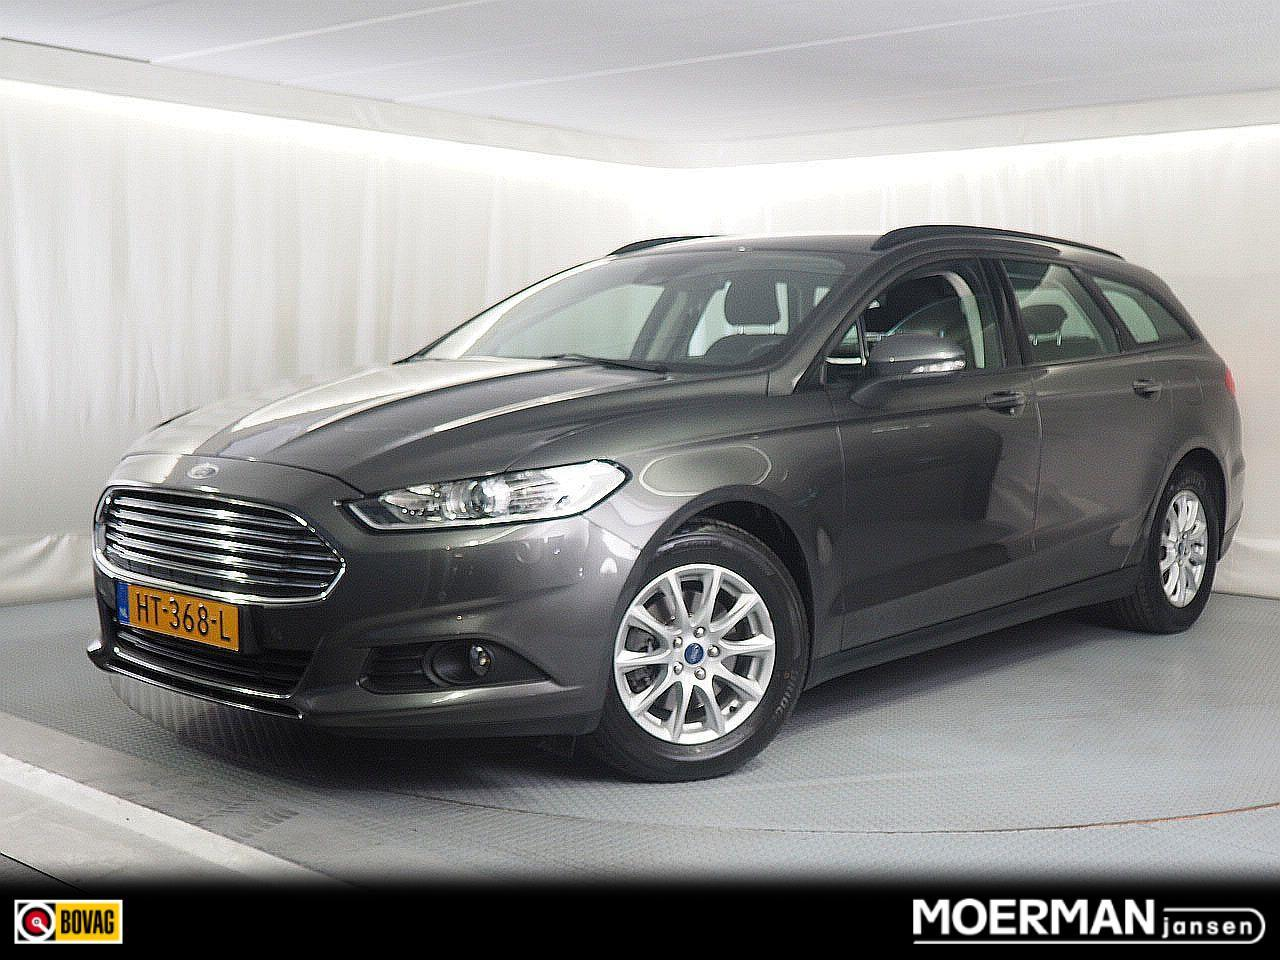 Ford Mondeo Wagon 1.0 ecoboost 125pk / nl auto / voll. dealerhistorie / 77.000km